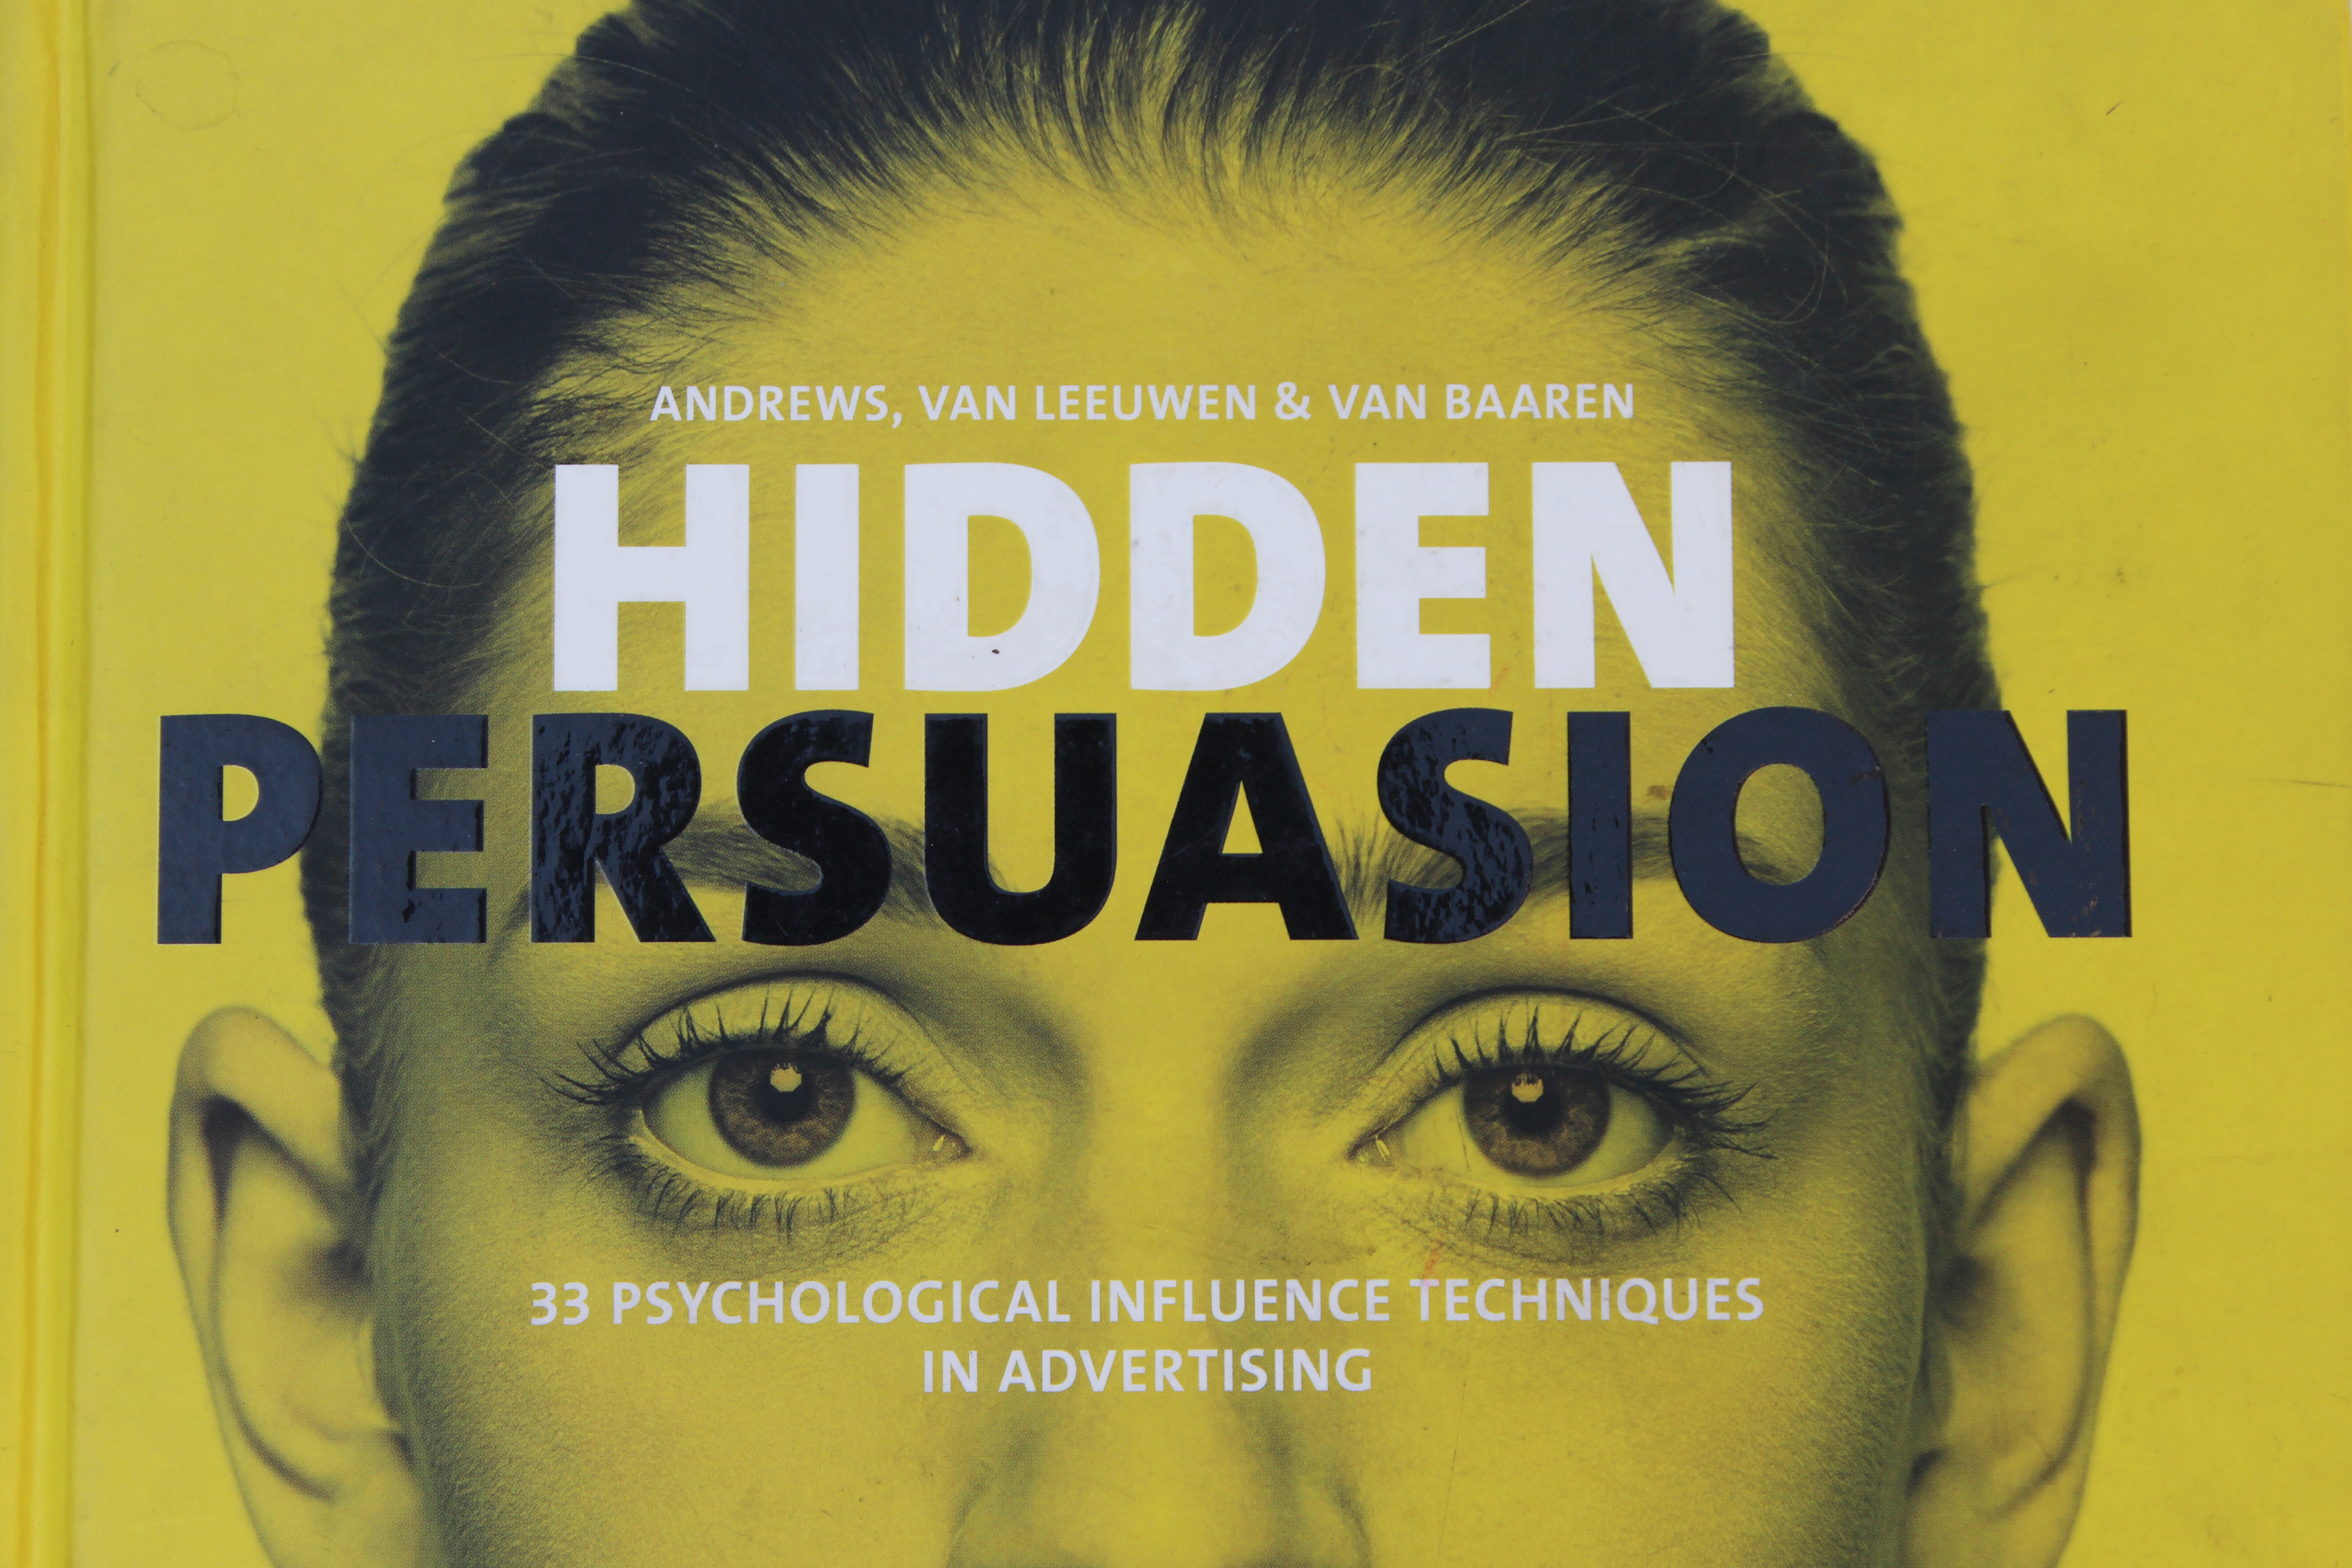 hidden persuasion 33 psychological influences techniques in advertising